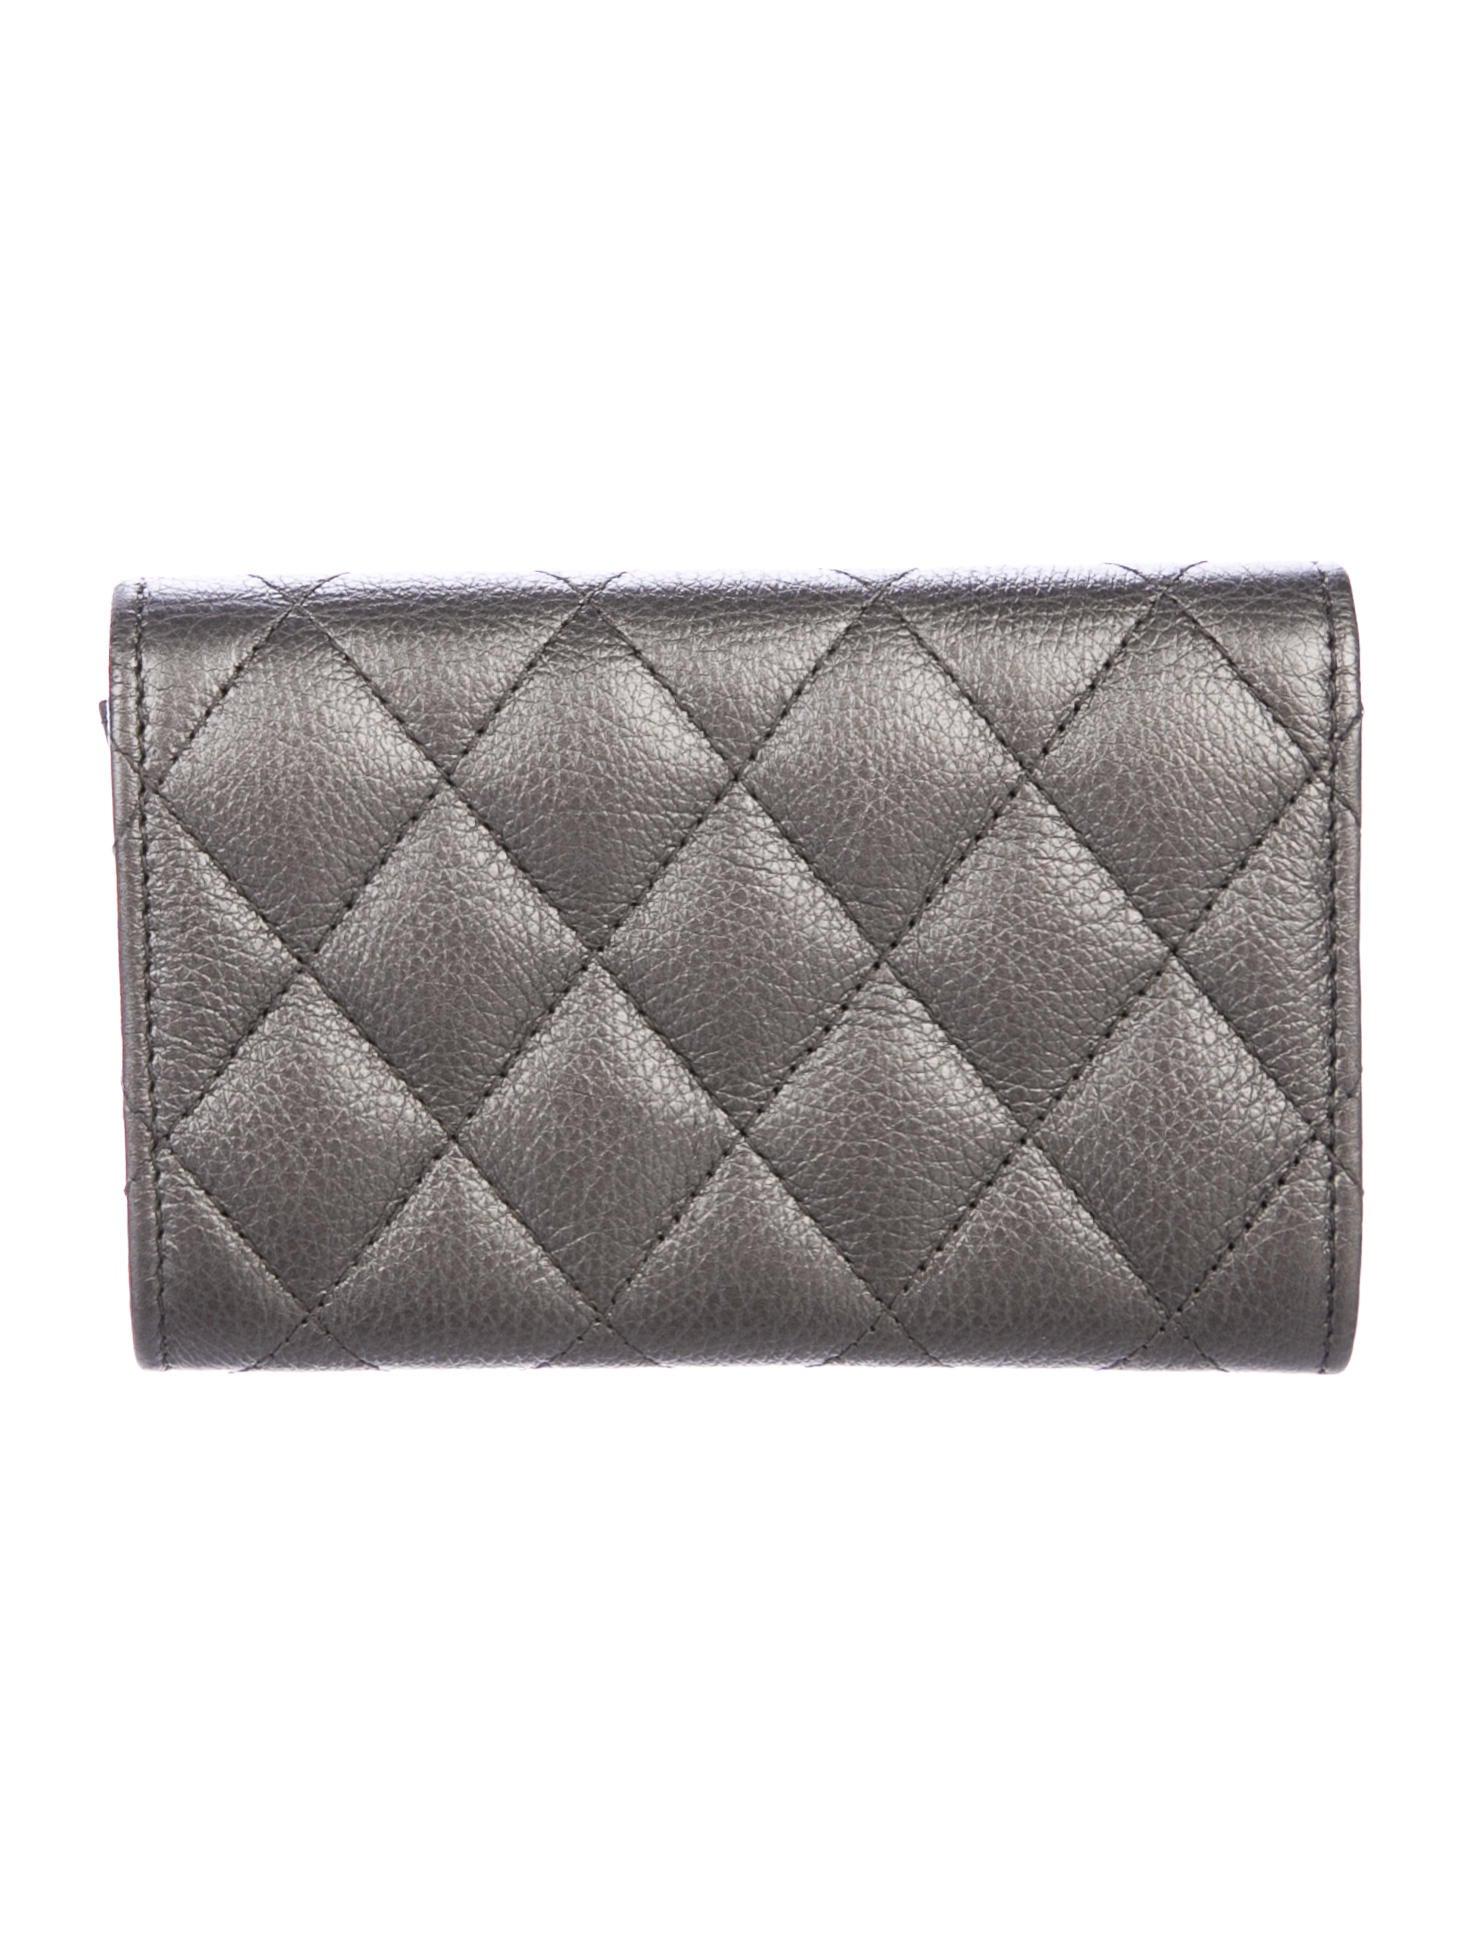 Chanel 2017 Reissue Business Card Holder Accessories Cha285296